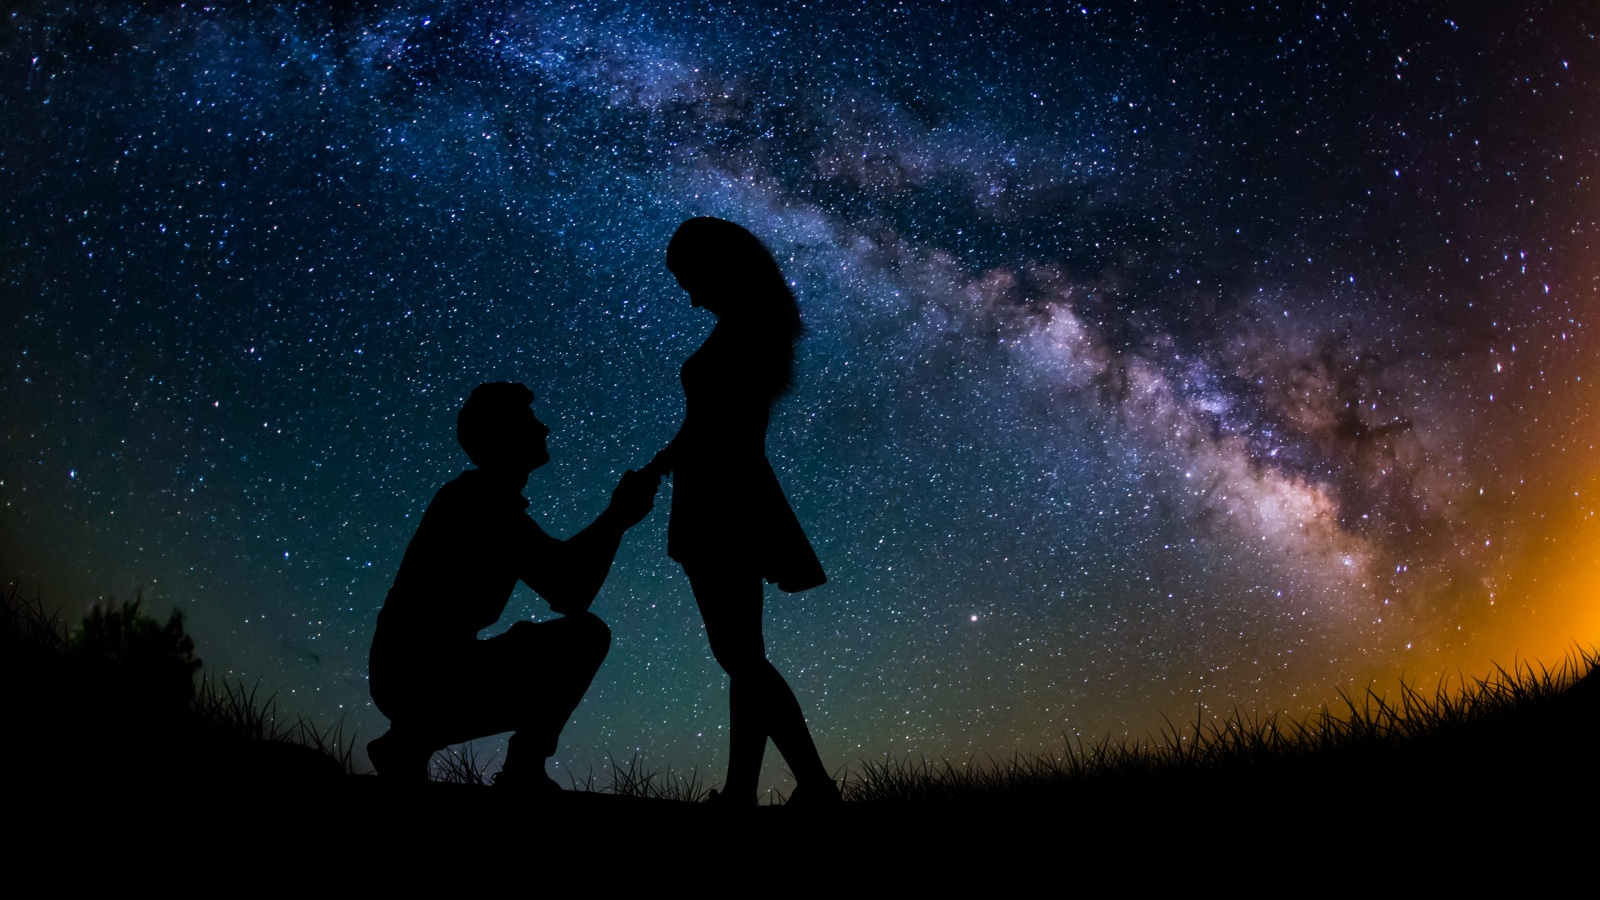 Couple 4K Wallpaper, Lovers, Proposal, Silhouette, Starry sky, Romantic, Engagement, Love, #995